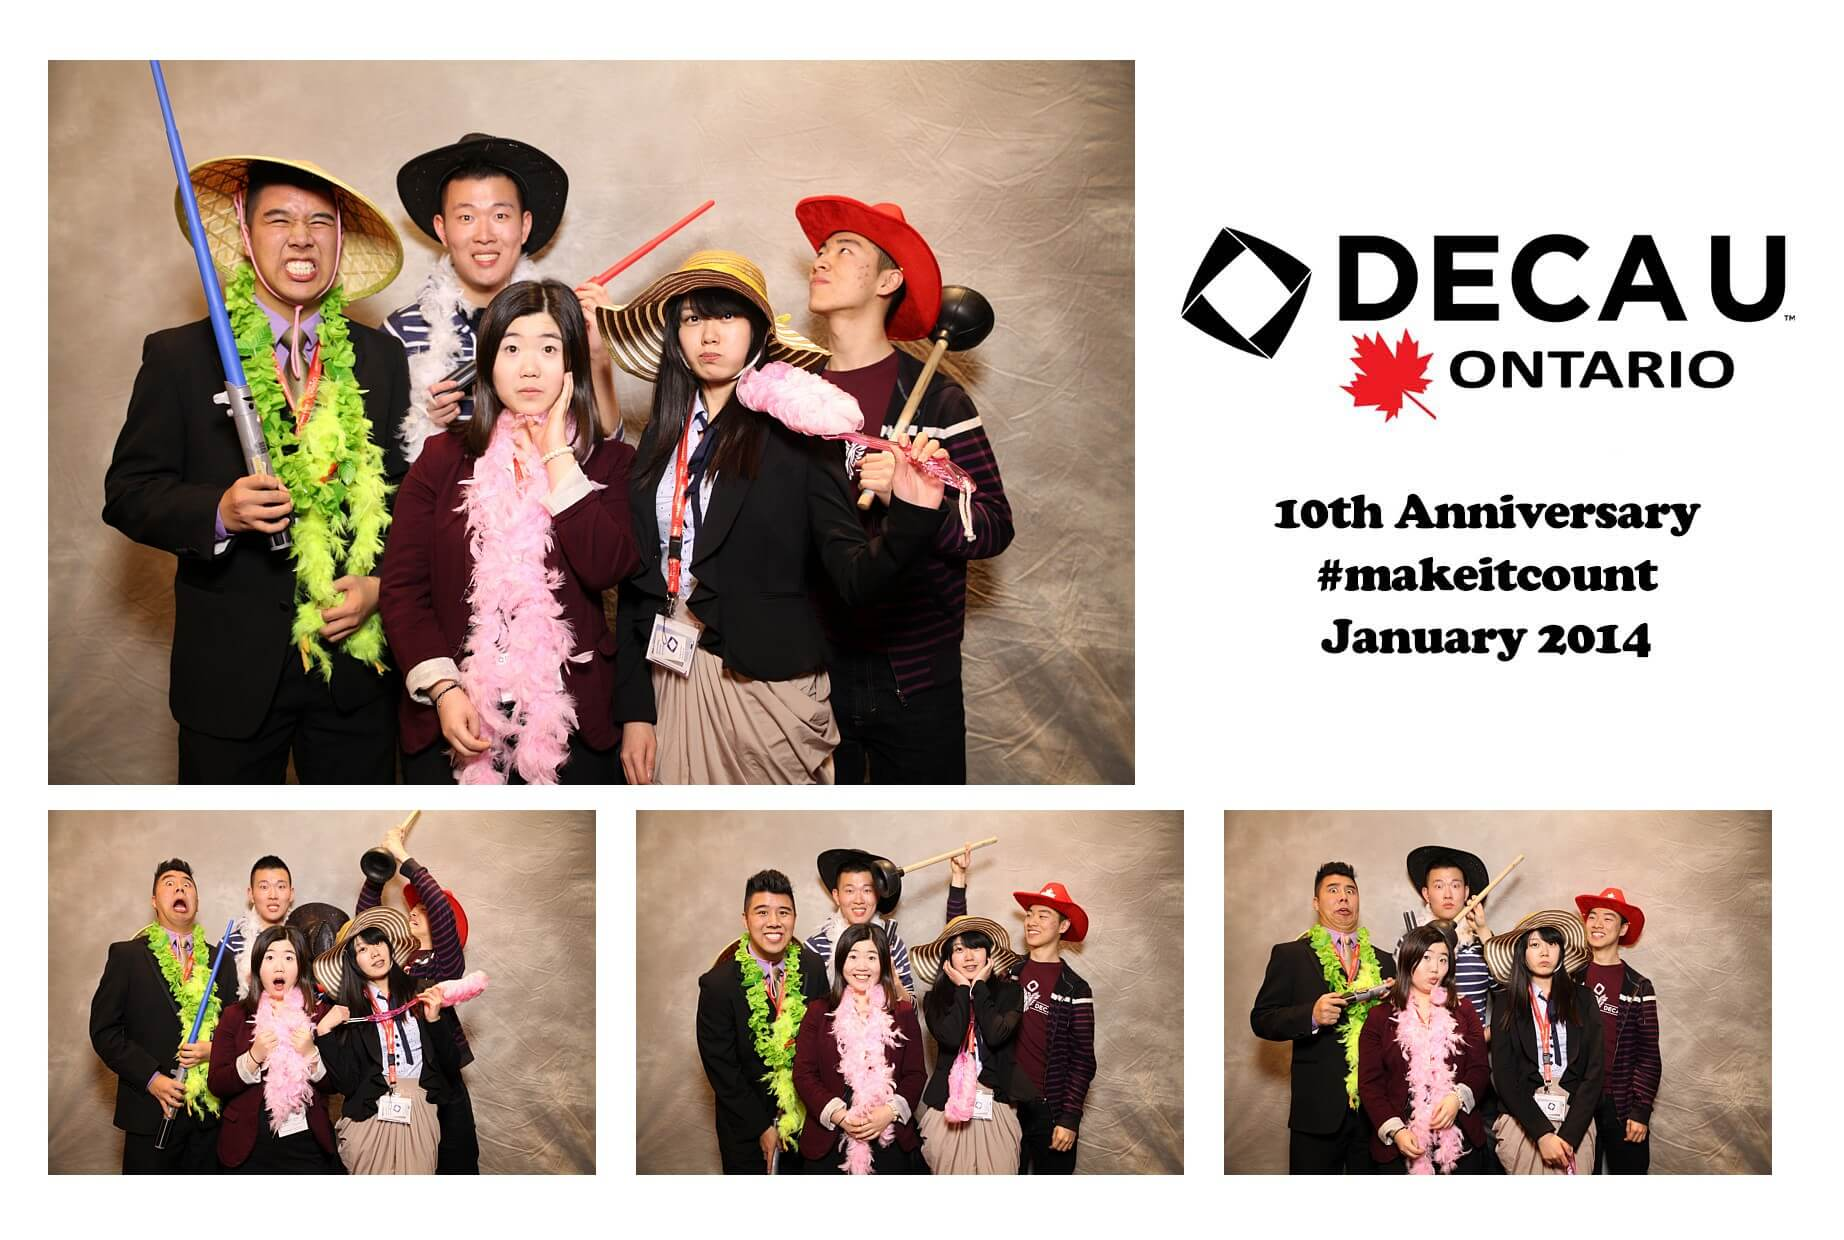 deca u 2014 conference photobooth photos